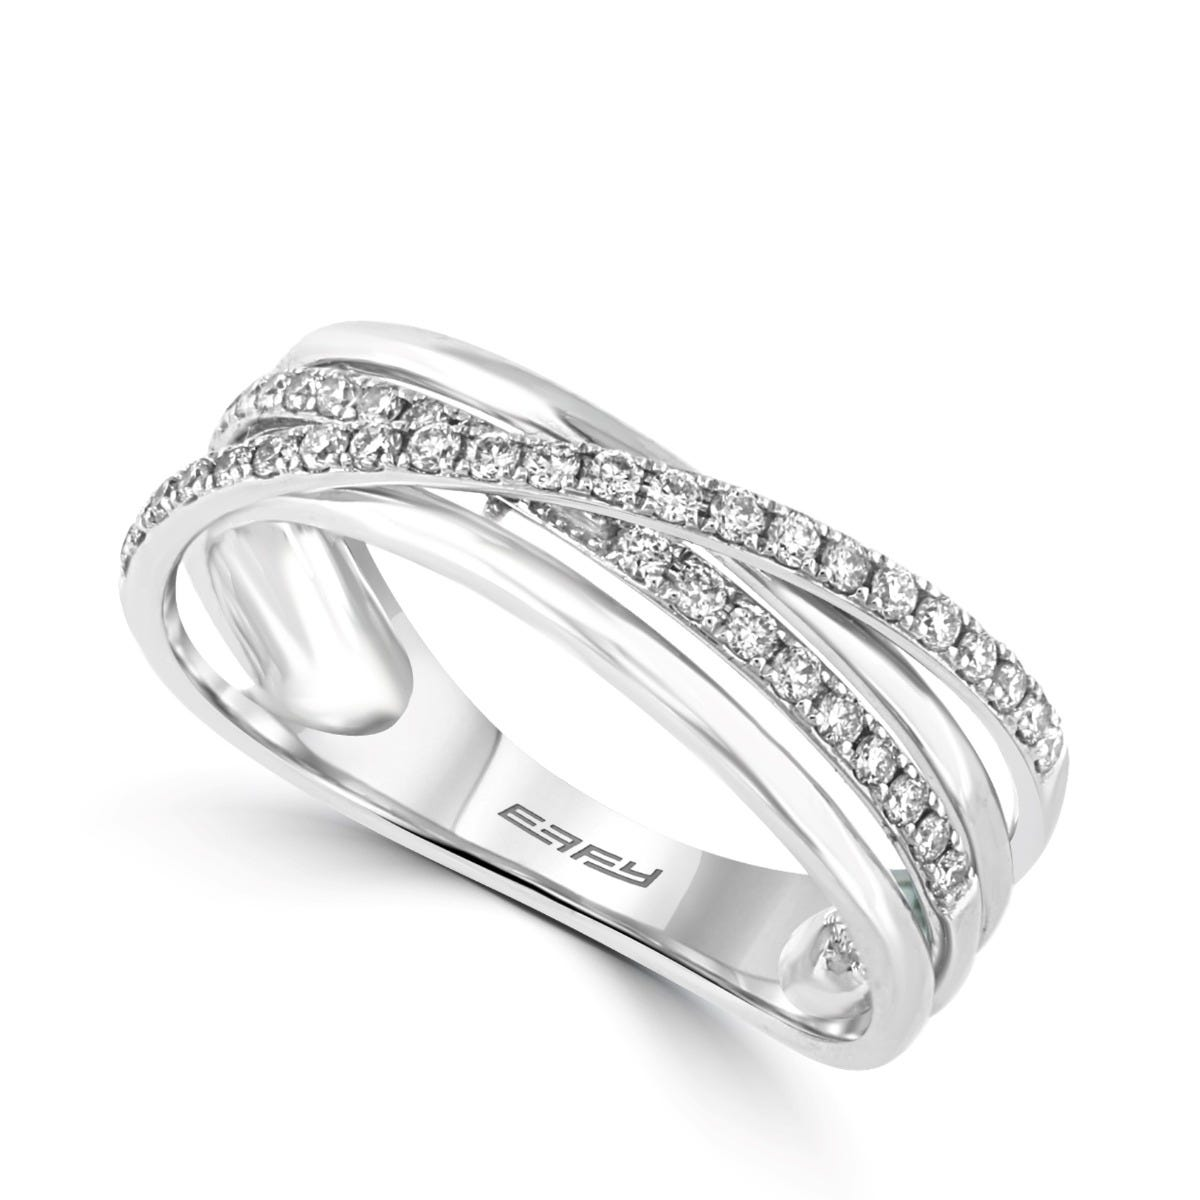 Effy Criss Cross Fashion Ring in 14k White Gold